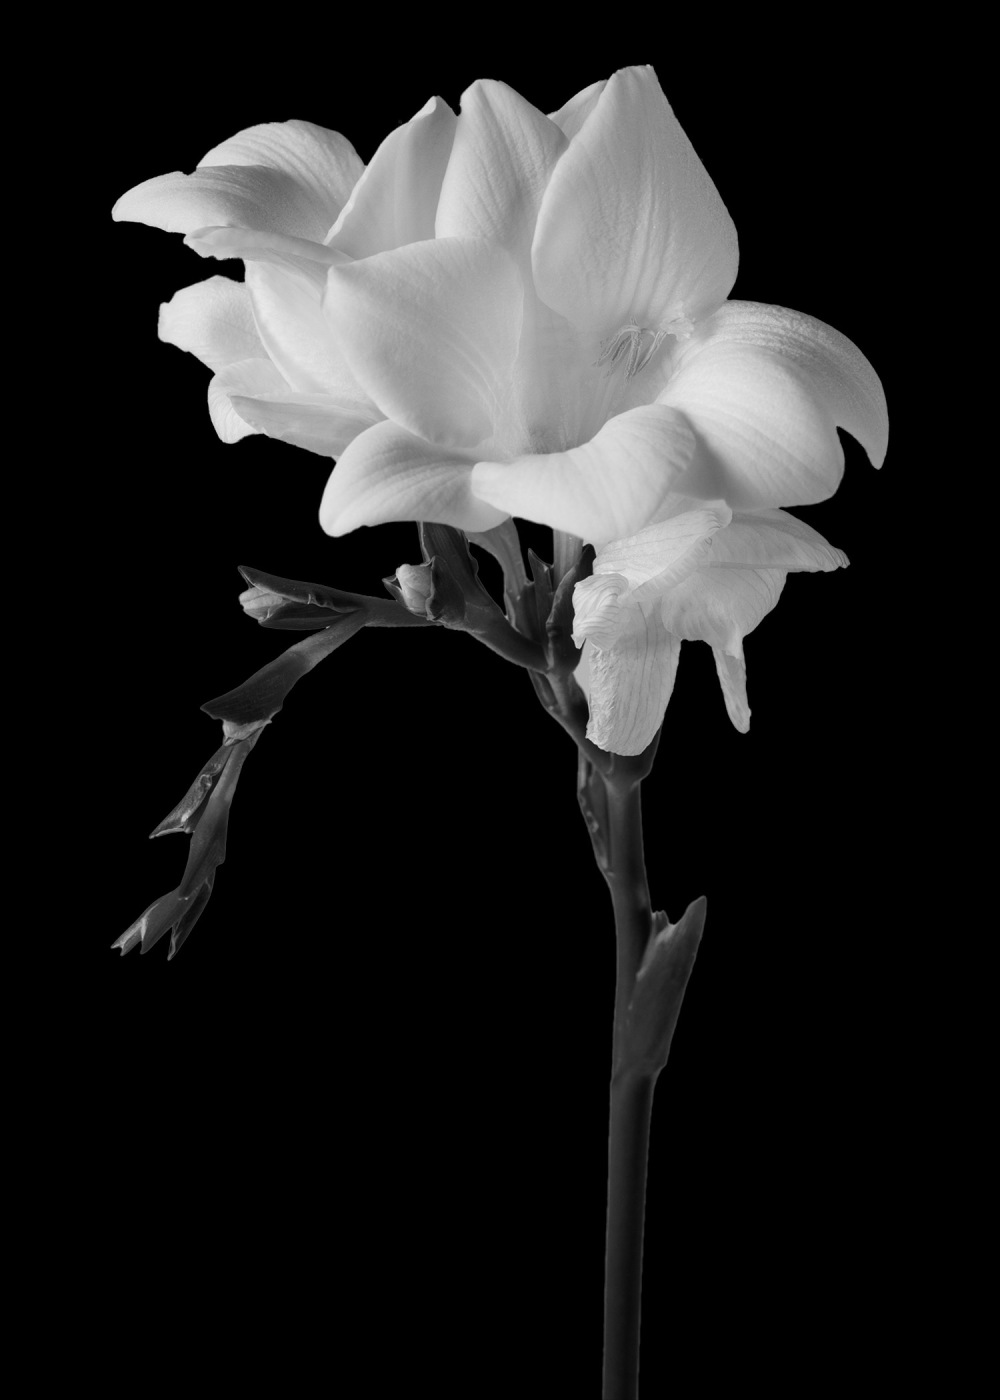 Homage to Mapplethorpe